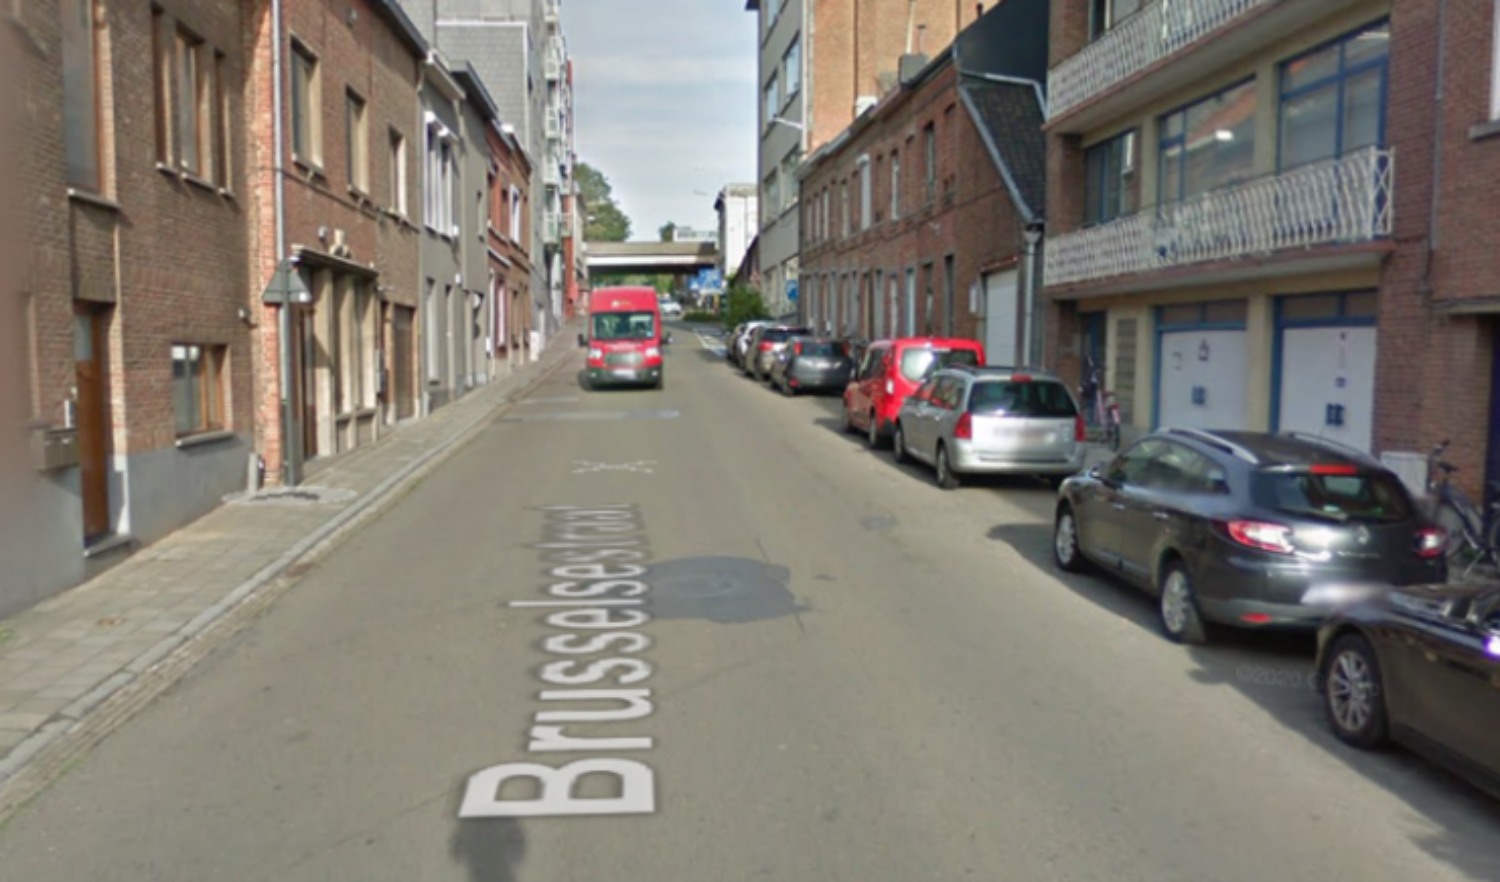 Leuven citizens ensure speed compliance with the help of low-cost traffic counting sensor